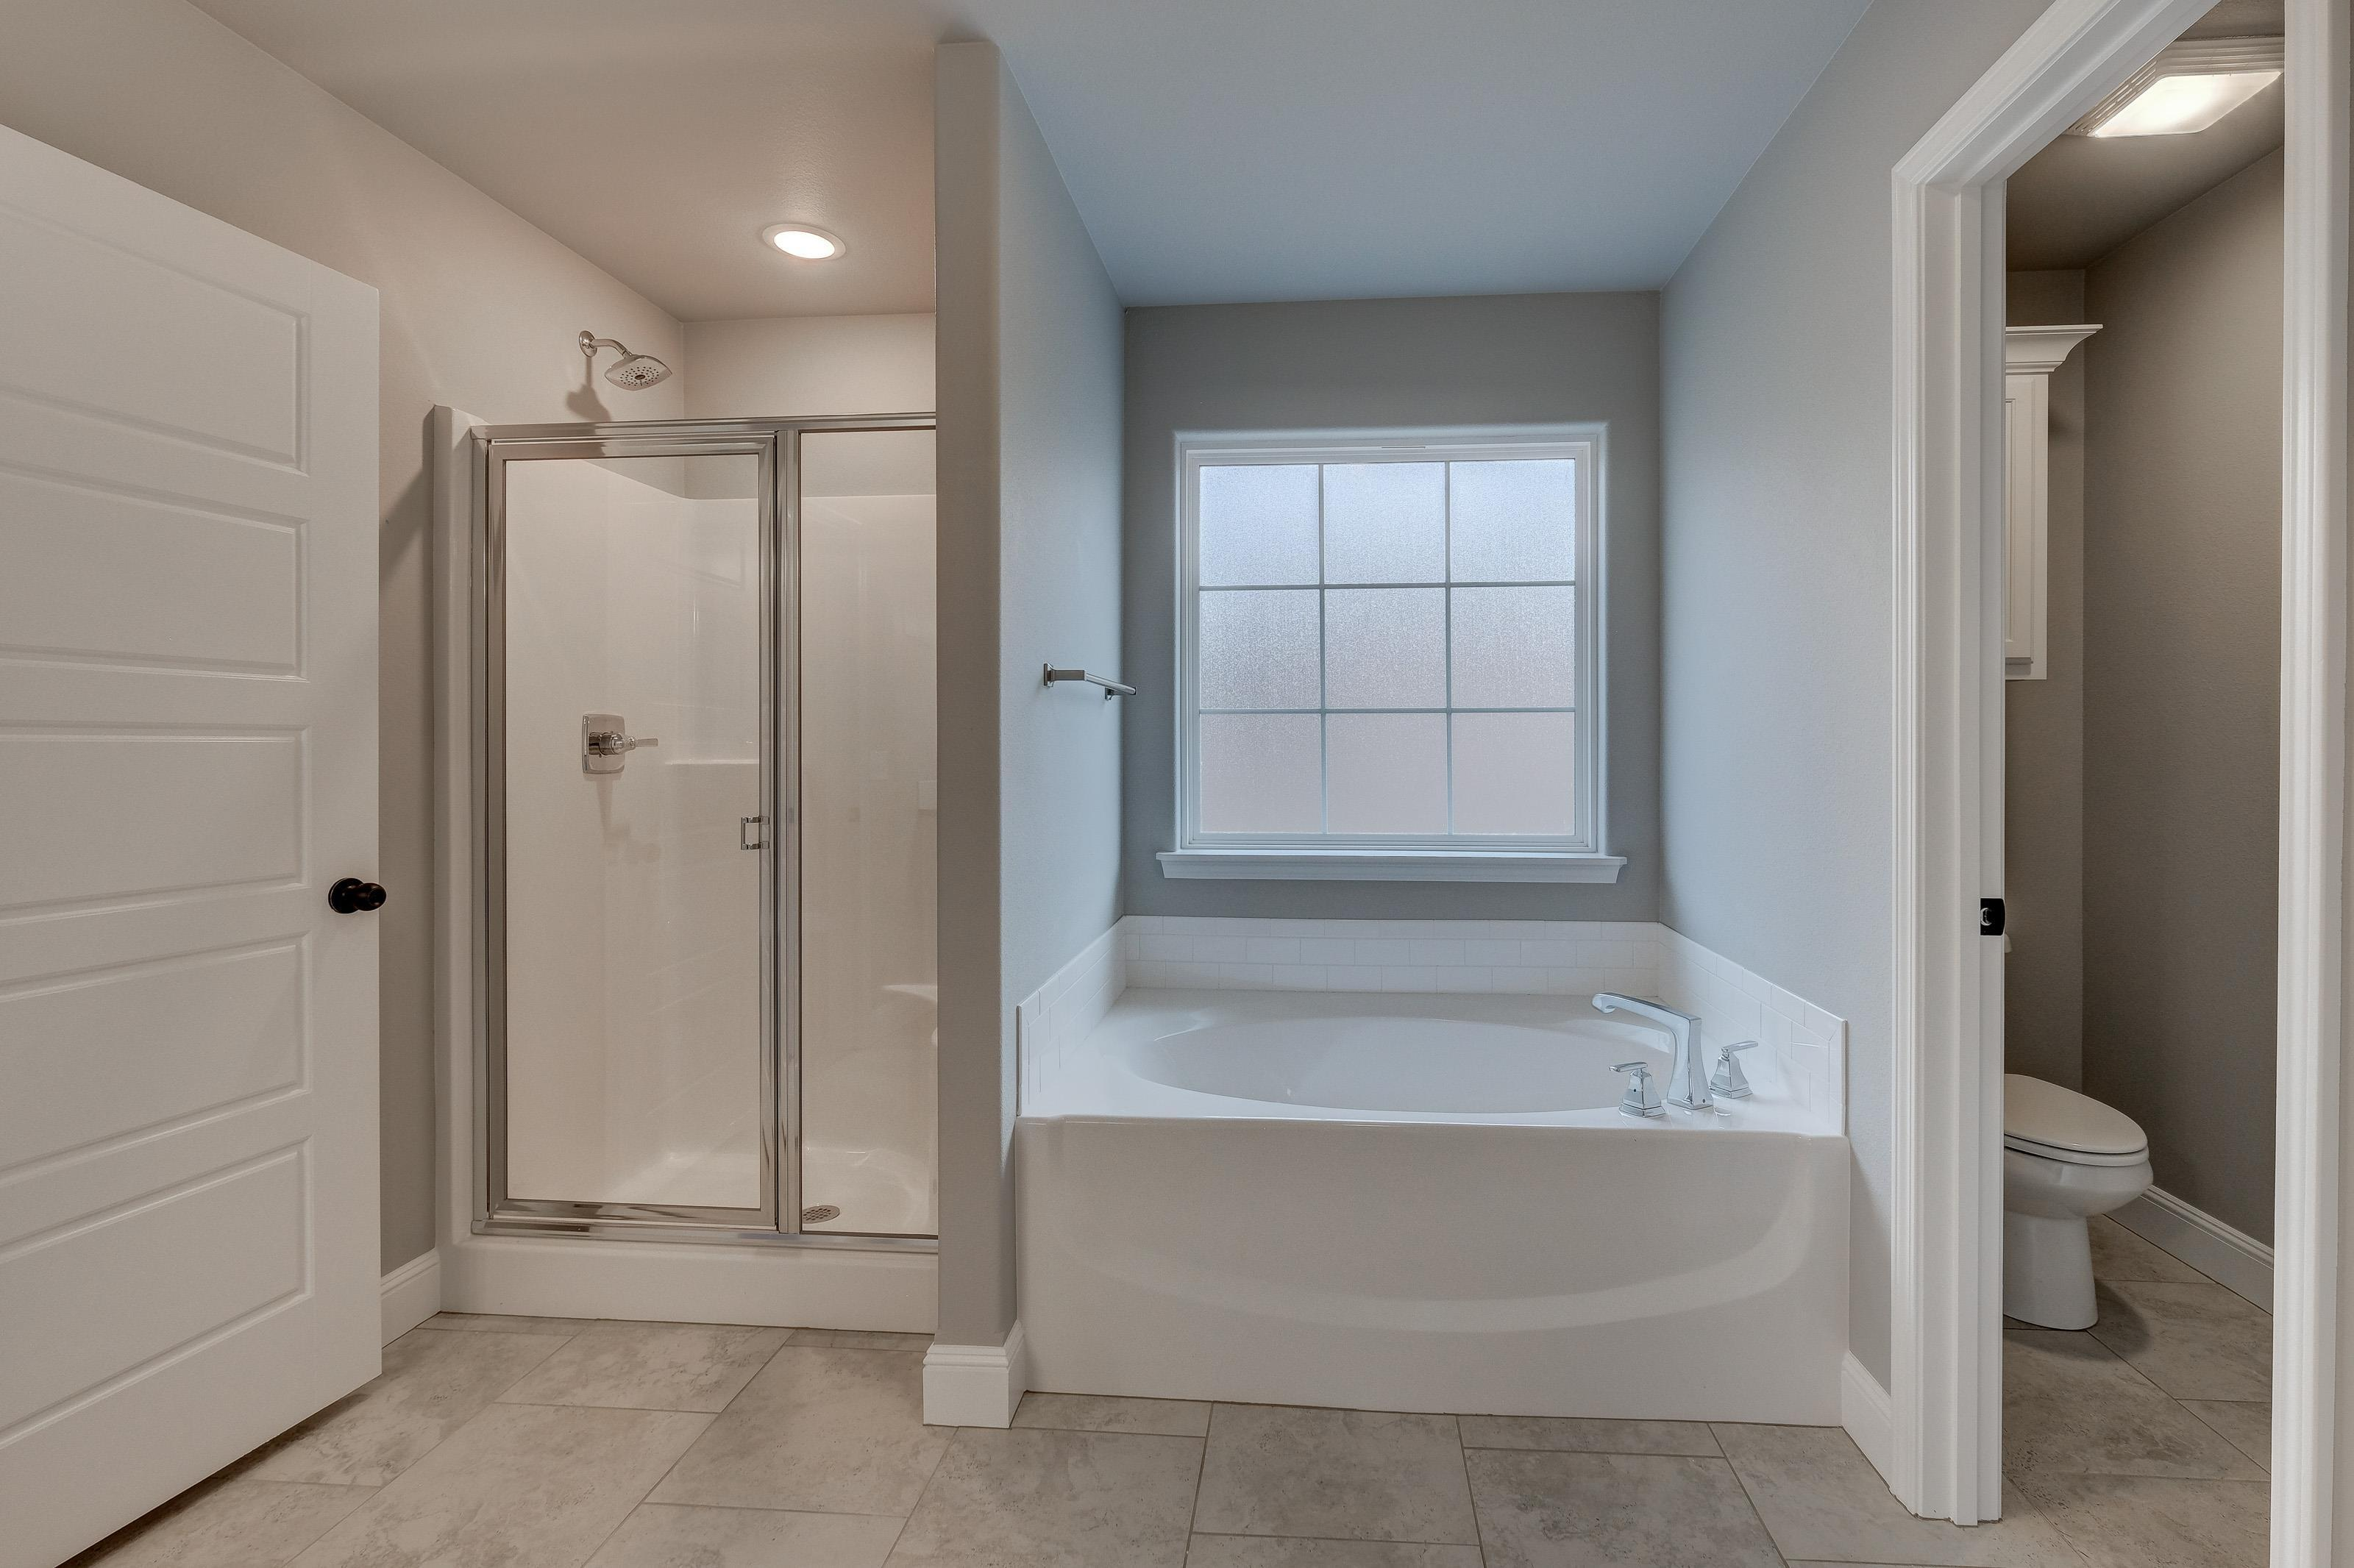 Bathroom featured in the 1950KP Series By Schuber Mitchell Homes in Fayetteville, AR